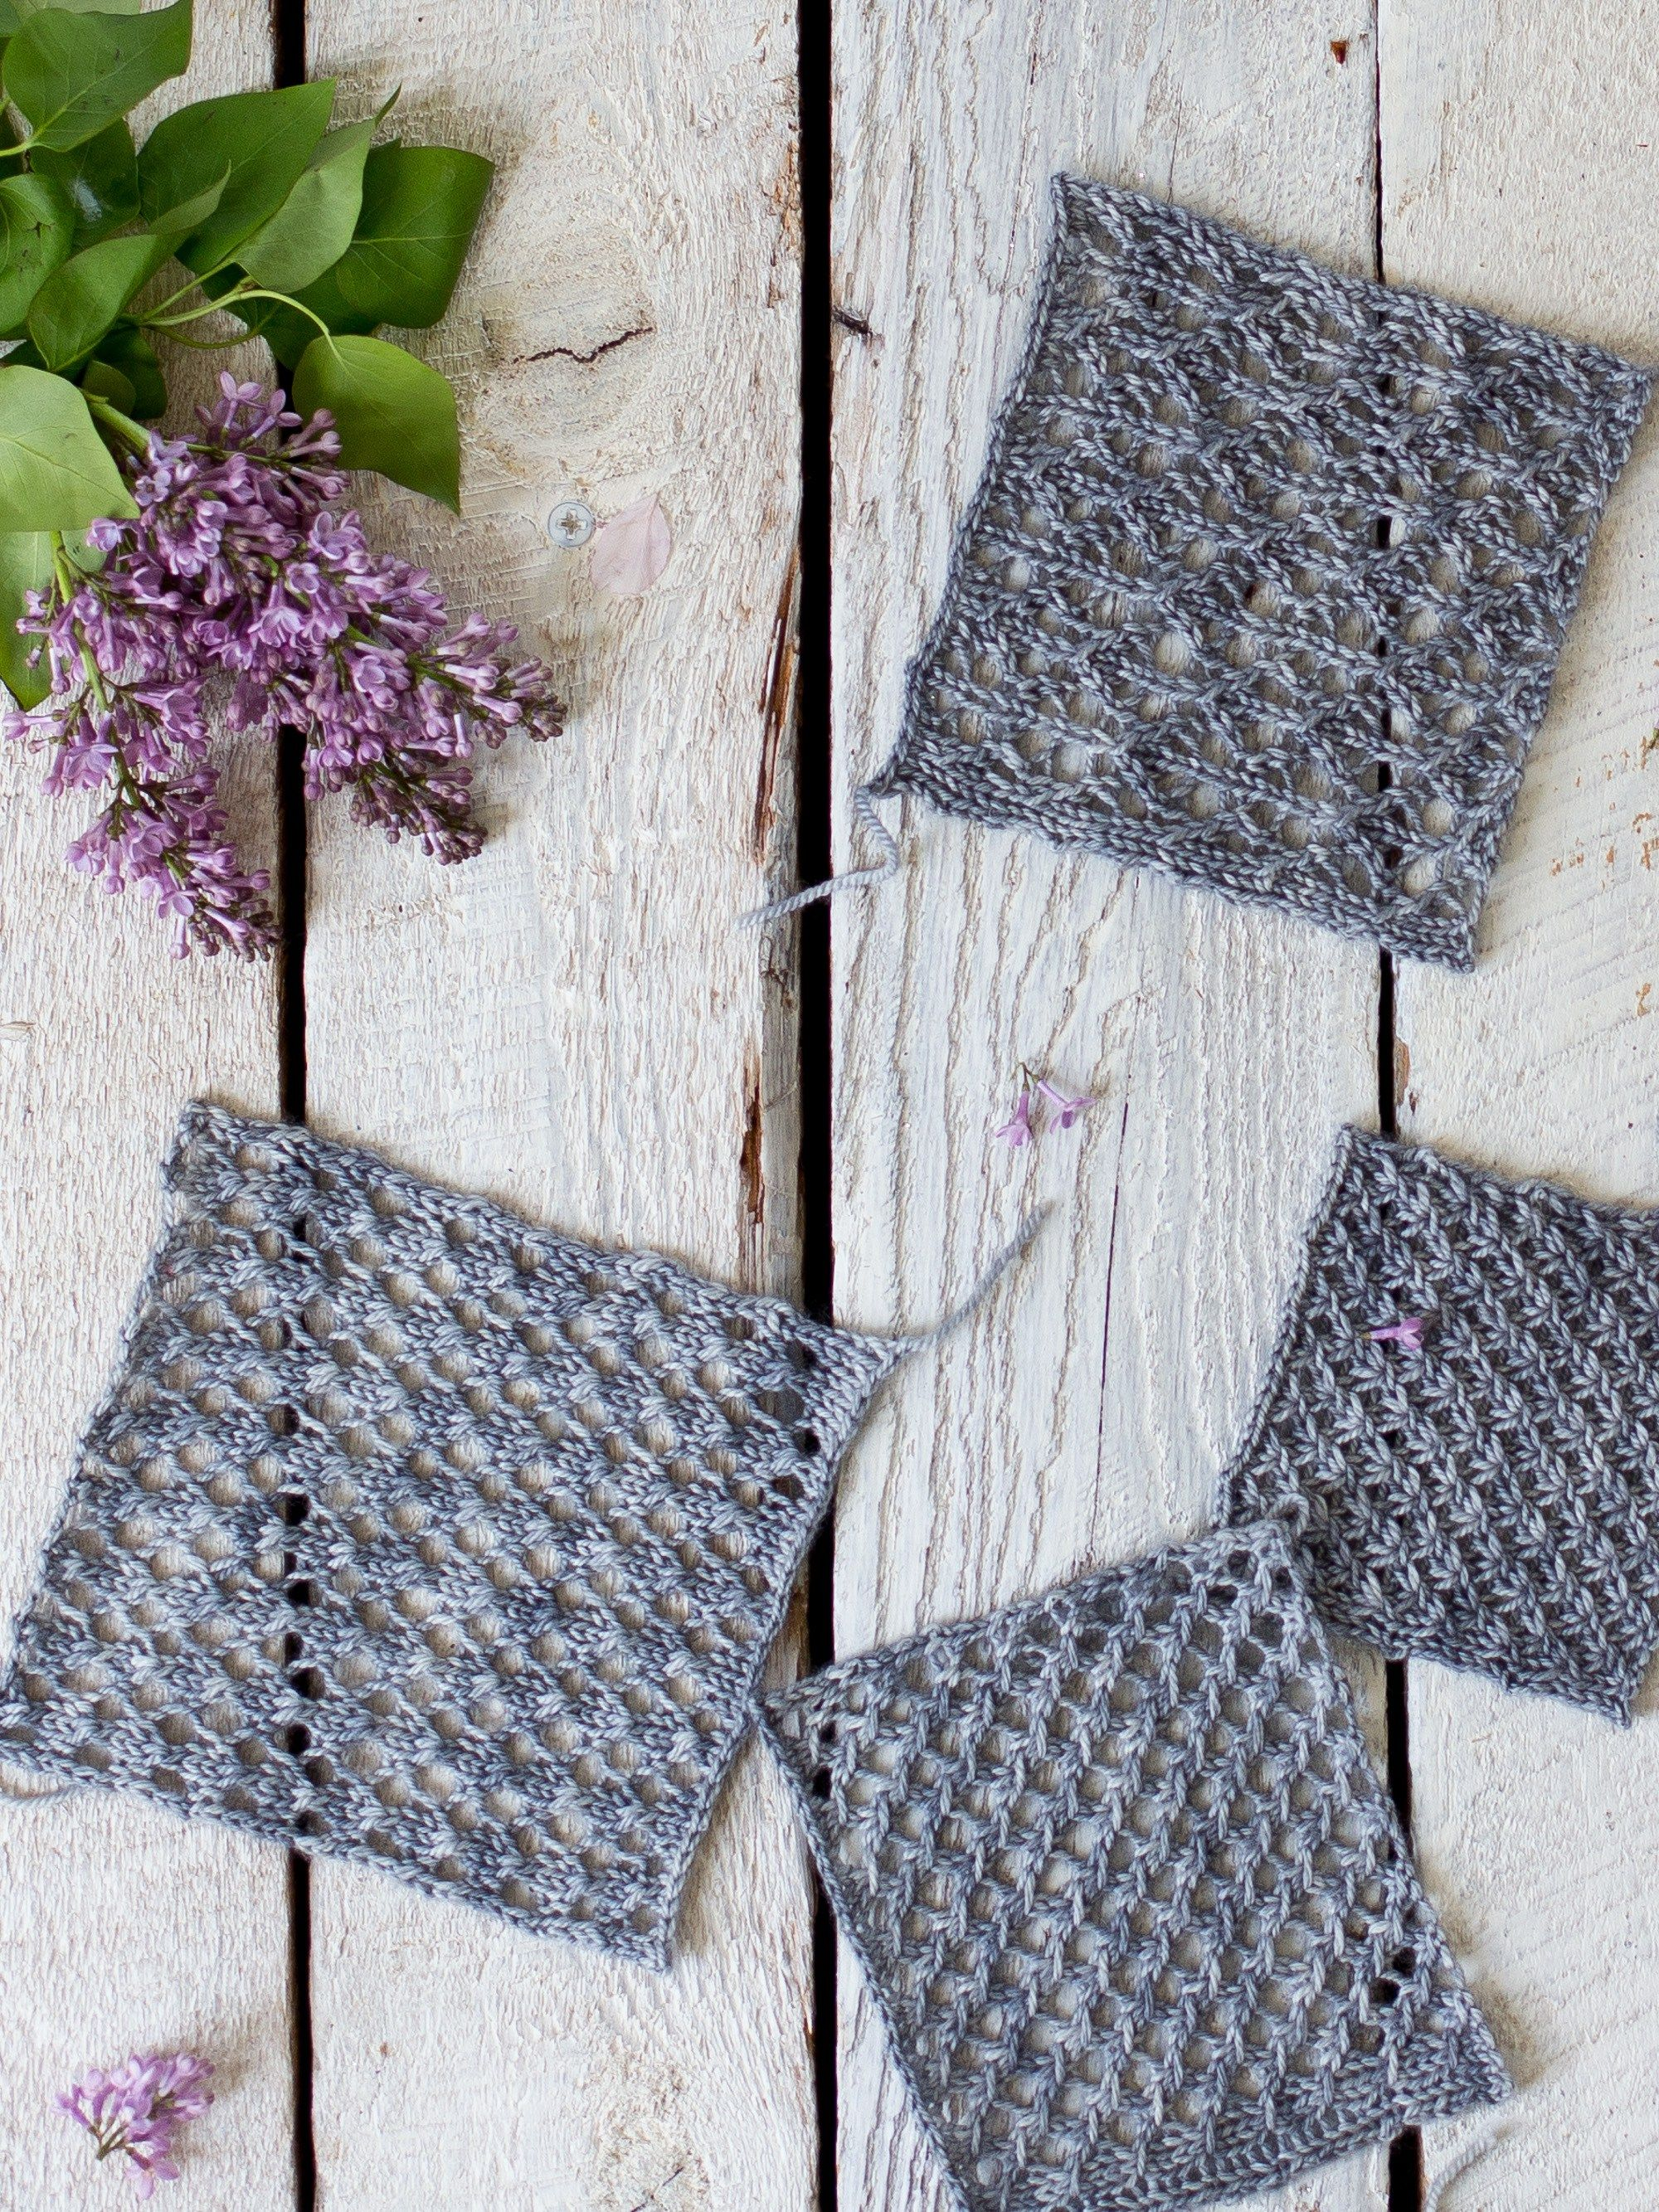 How to make an easy lace knit shawl pattern knit lace lace easy knit lace patterns bankloansurffo Image collections